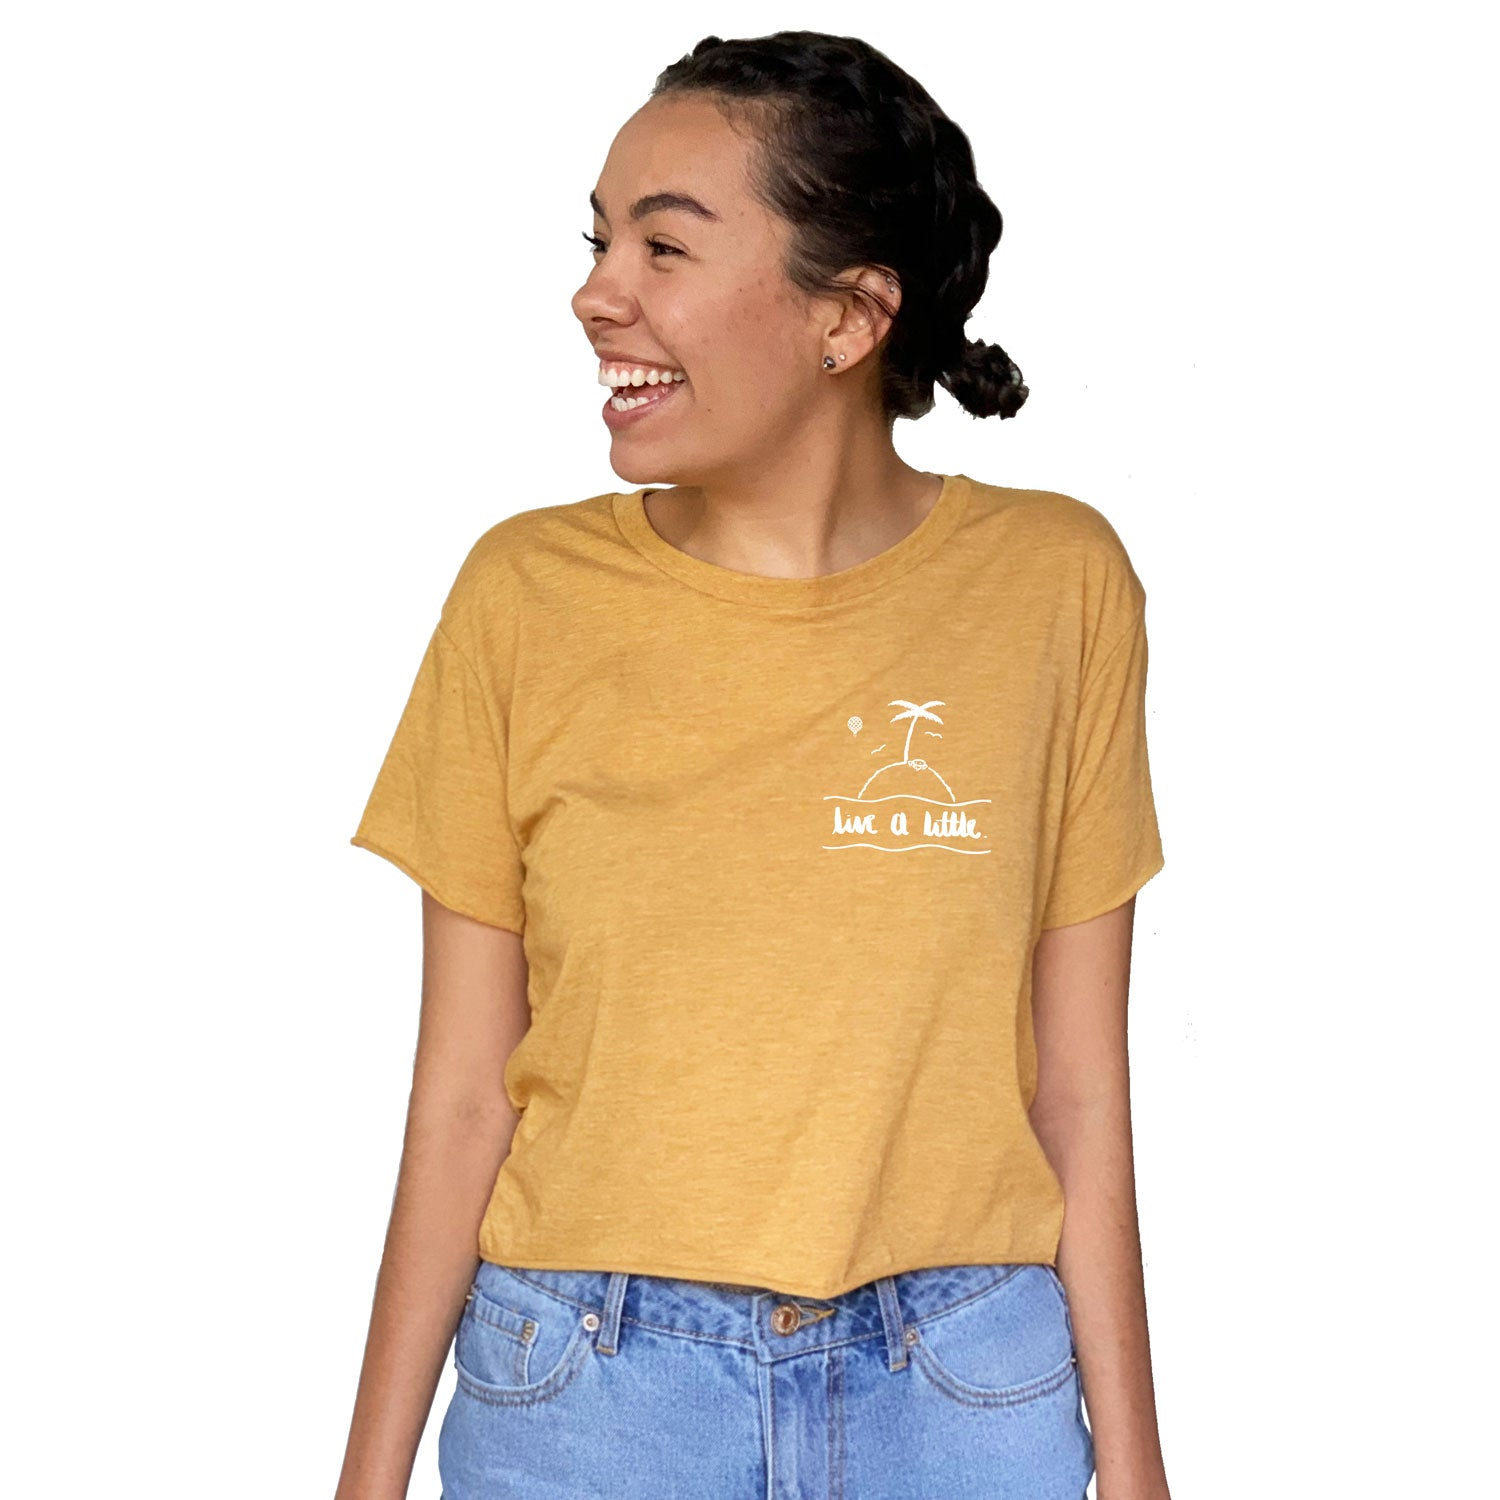 LIVE A LITTLE by #TeamMaddy | women crop top | gold